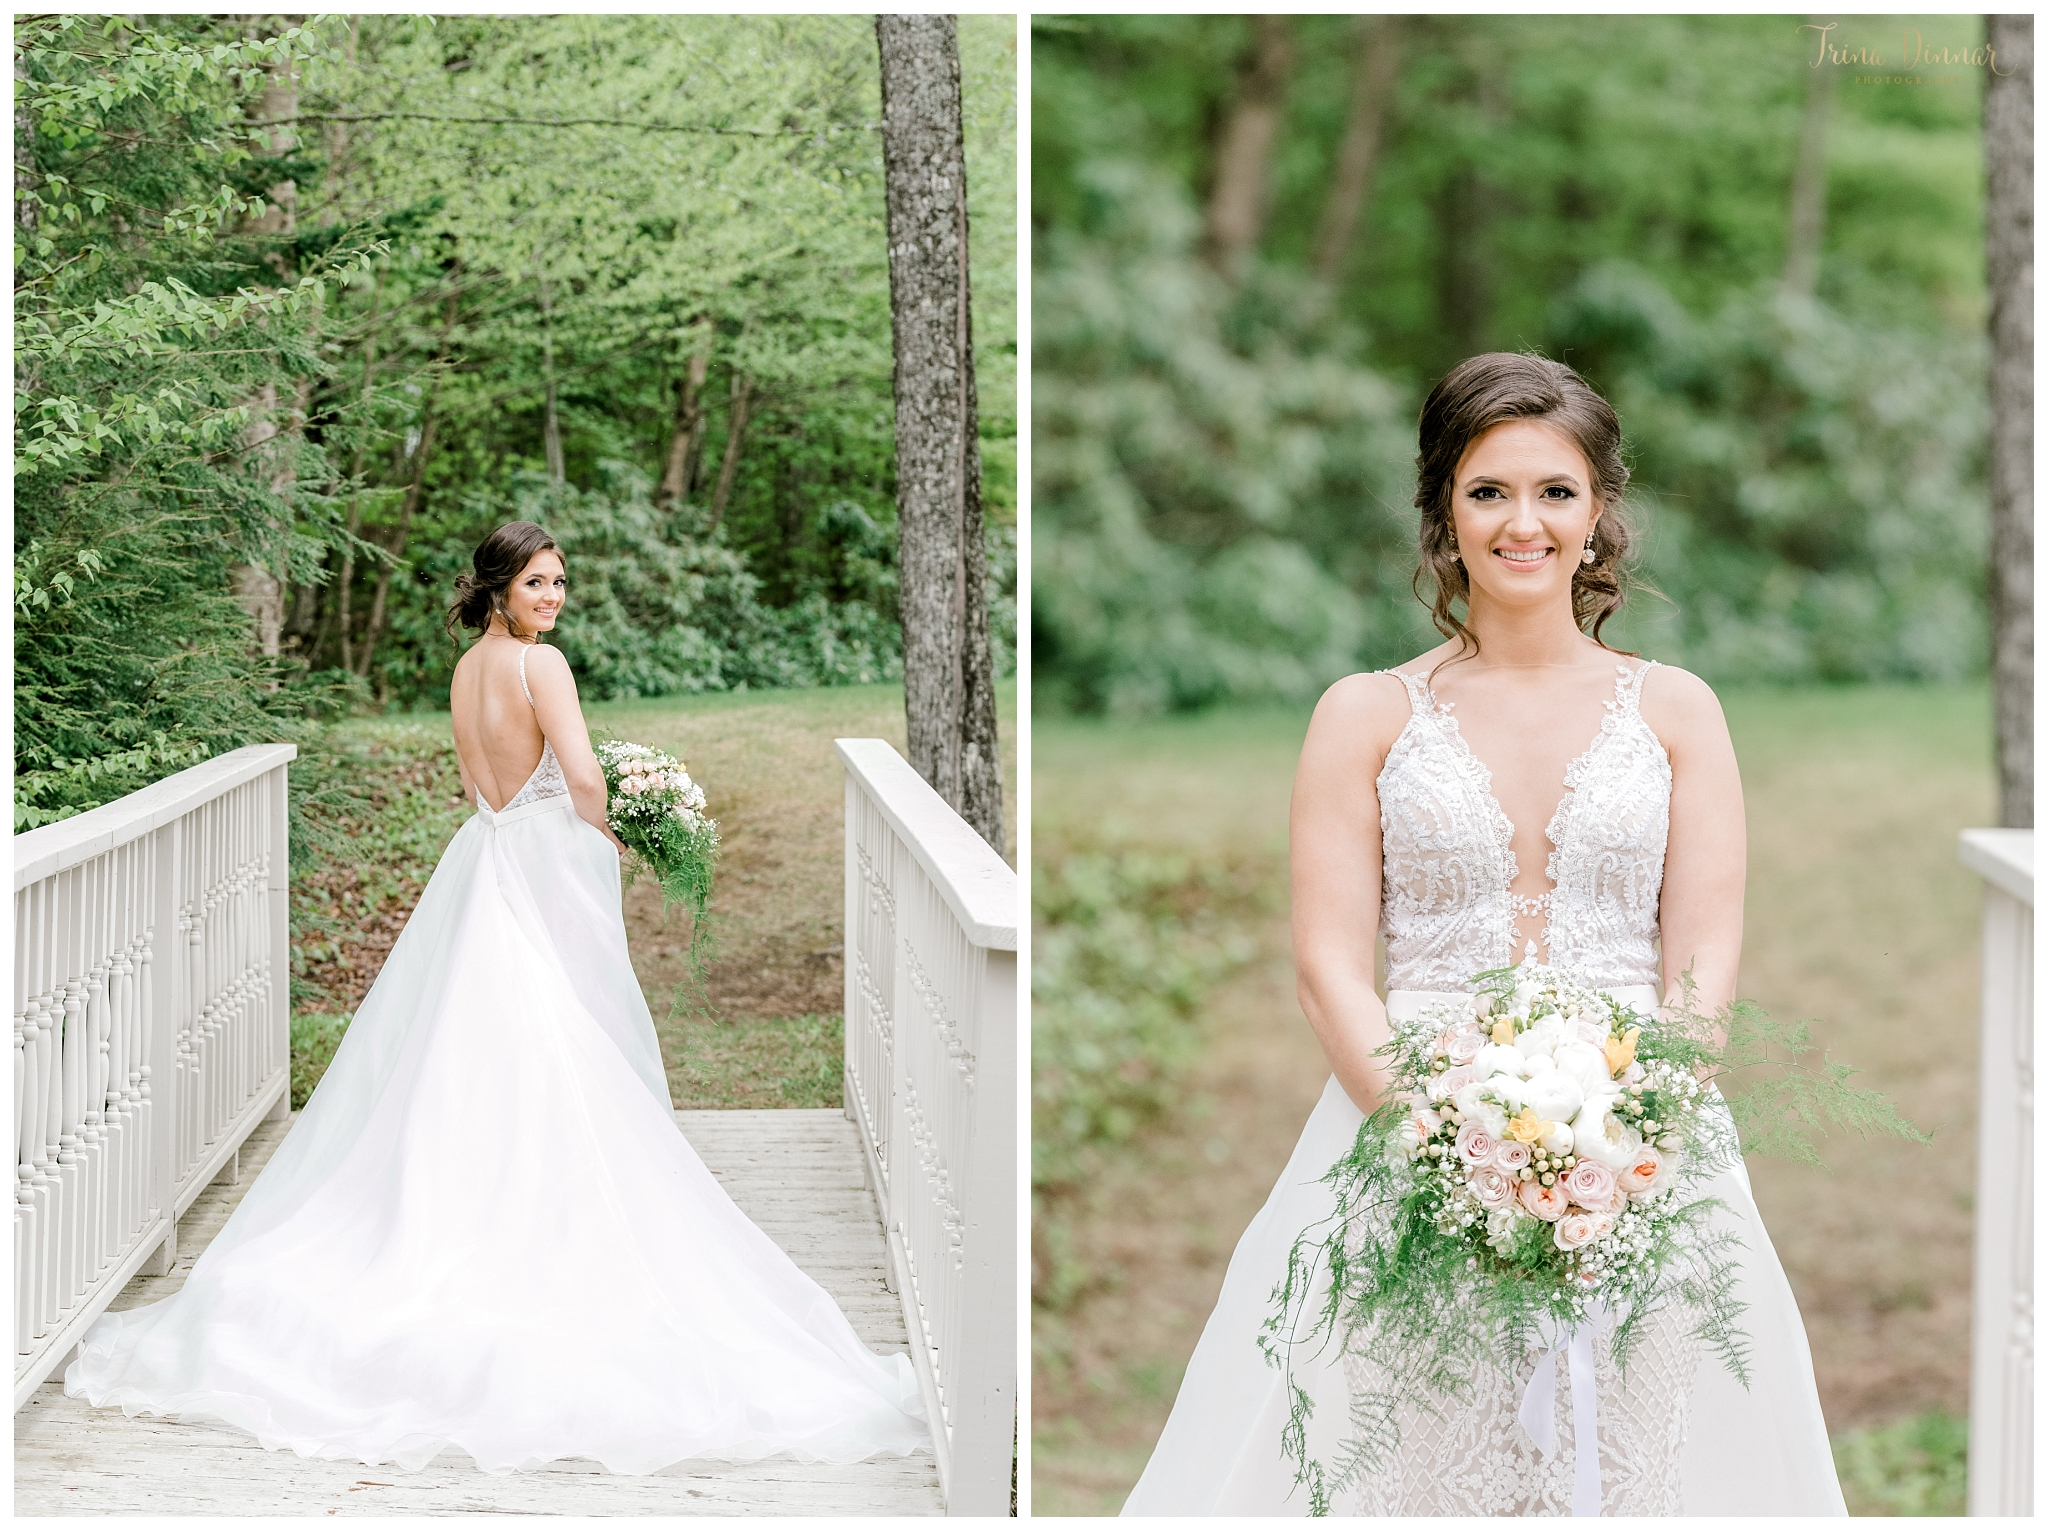 Greek Cultural Heritage Maine Bridal Portraits